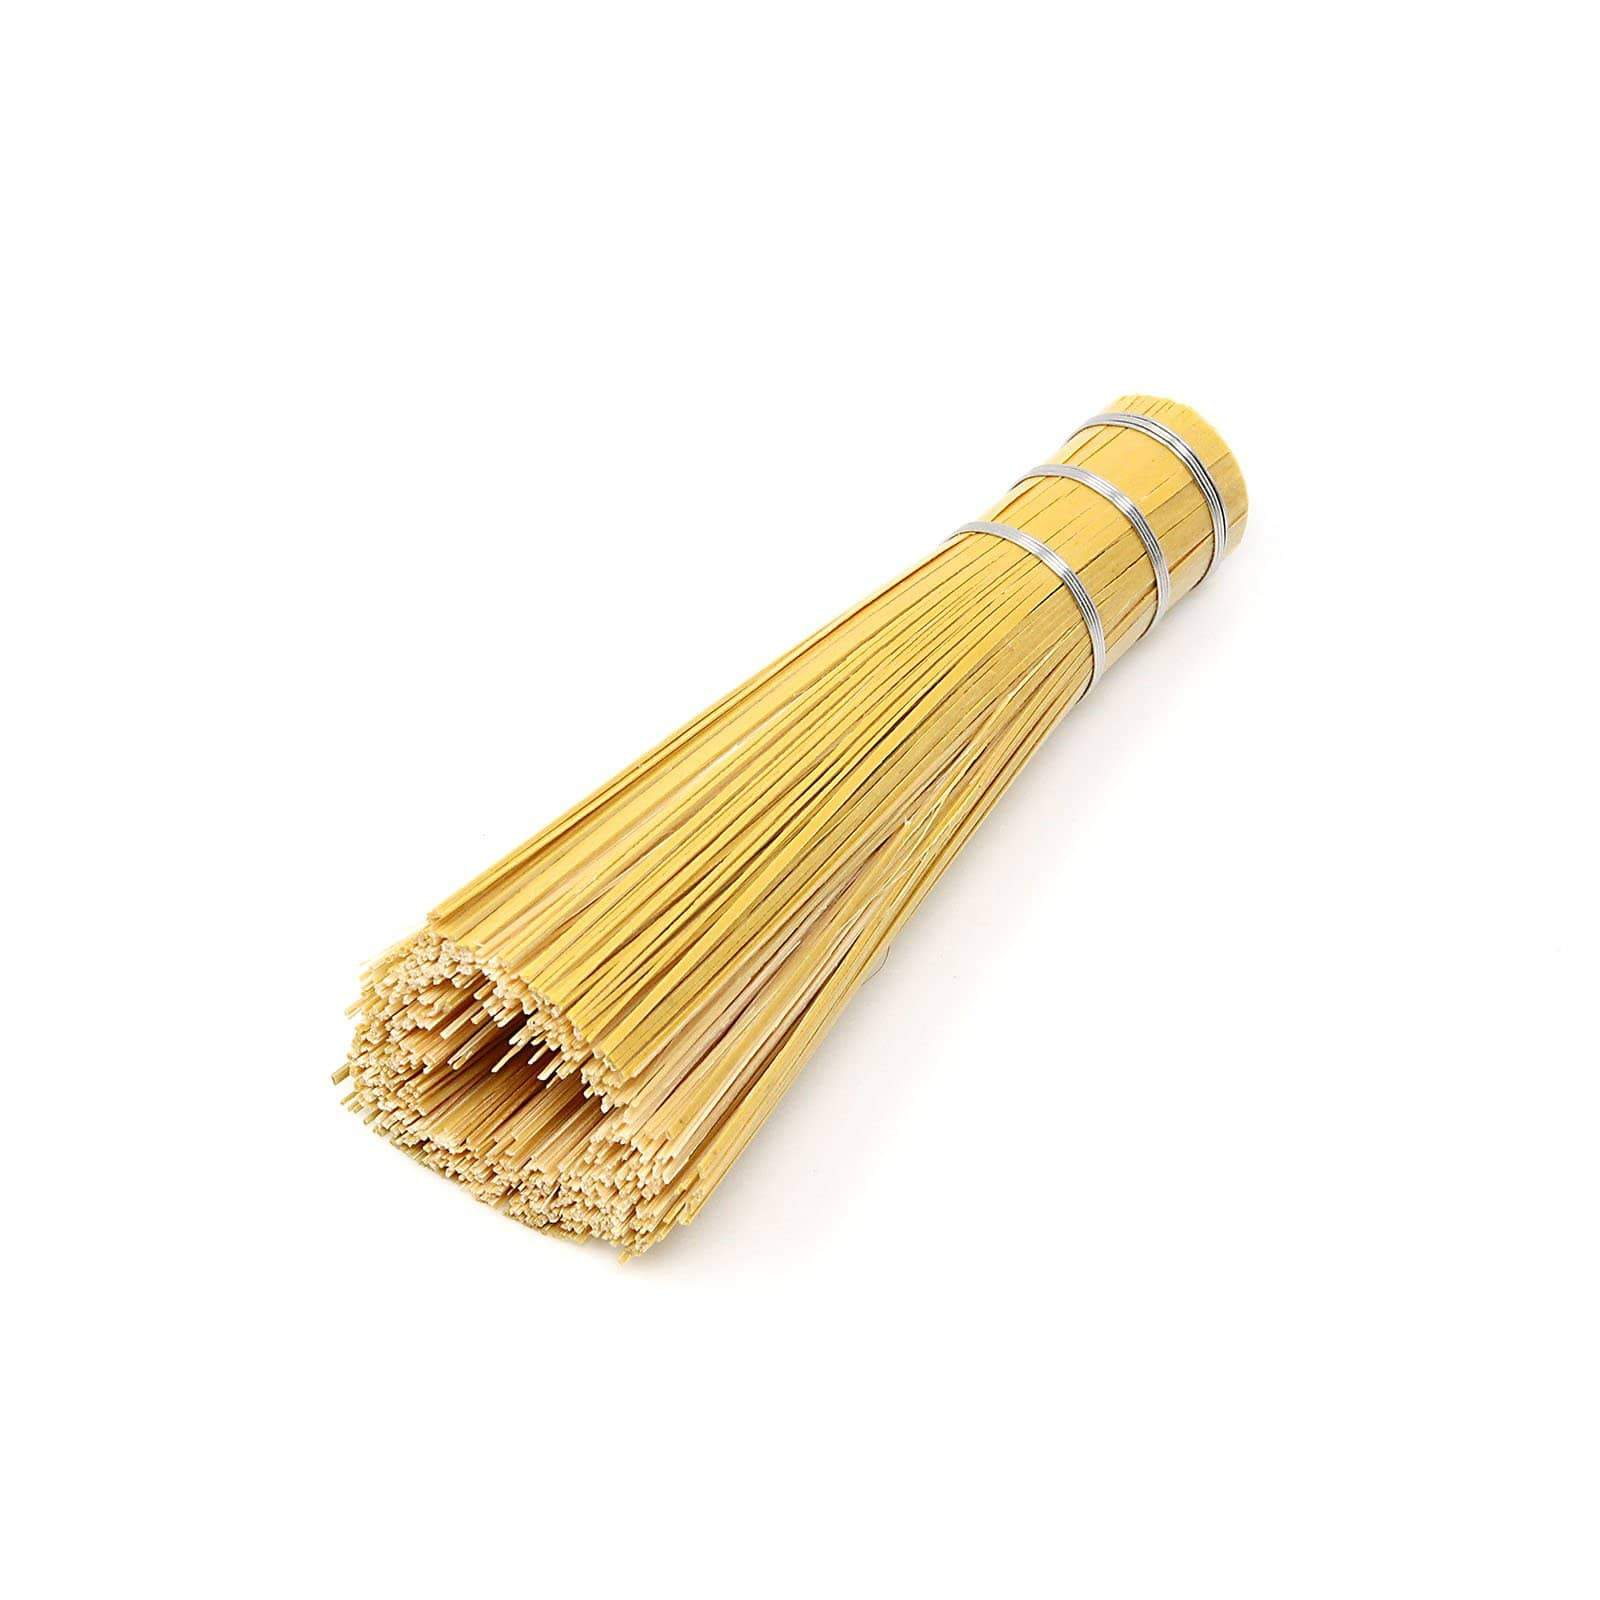 Sasara Bamboo Scrubbing Brush 12cm Cleaning Brushes